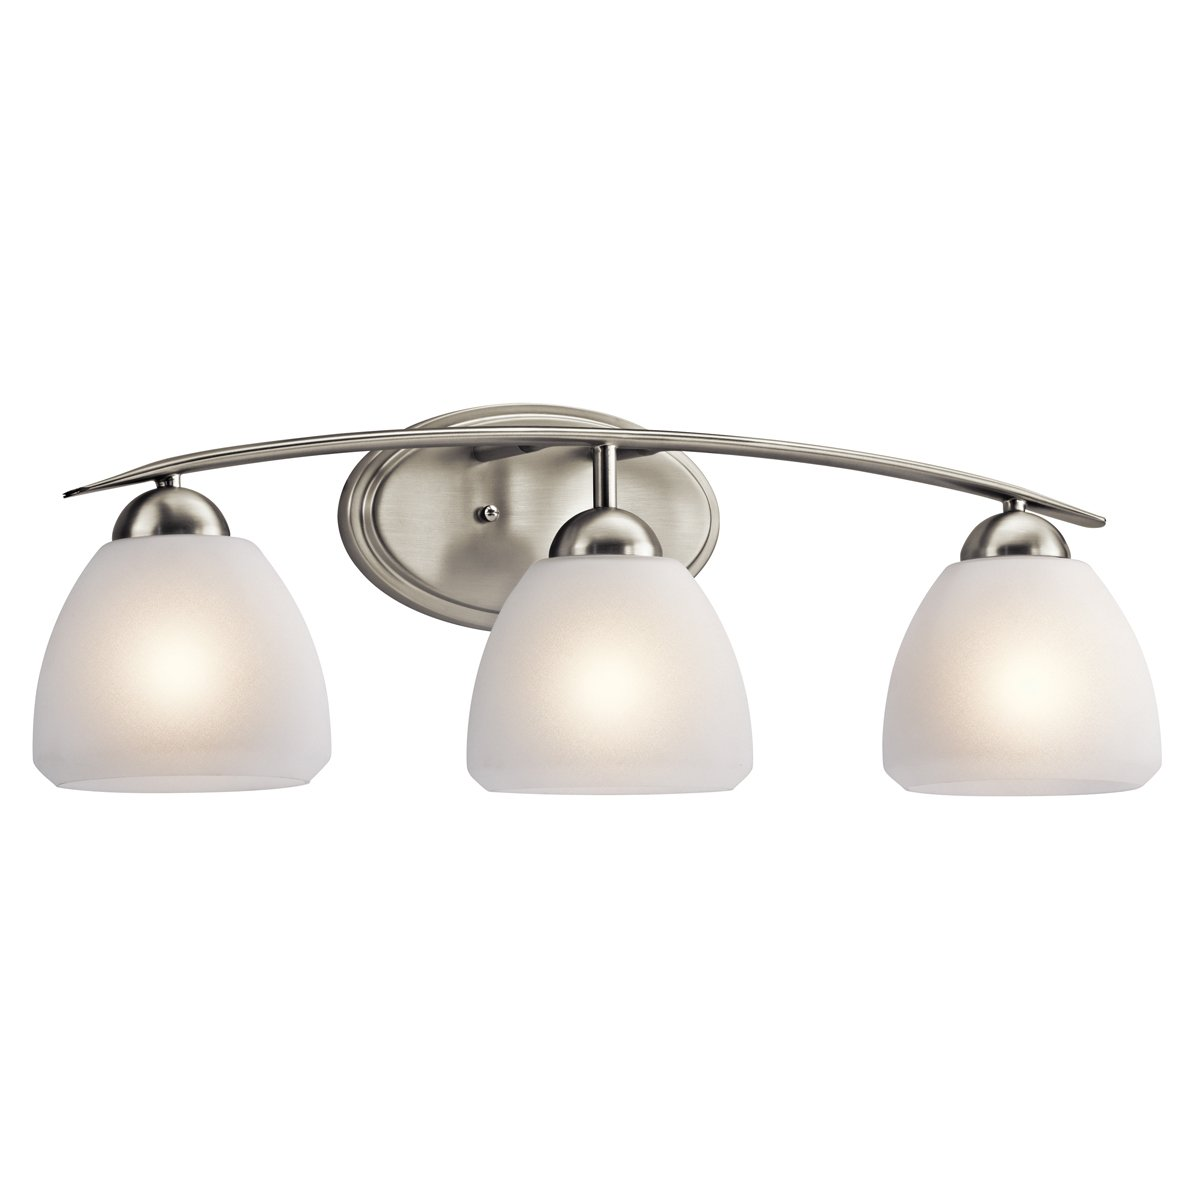 Kichler lighting 45119ni calleigh 3lt vanity fixture brushed nickel kichler lighting 45119ni calleigh 3lt vanity fixture brushed nickel finish with satin etched cased opal glass bathroom light fixtures amazon aloadofball Images